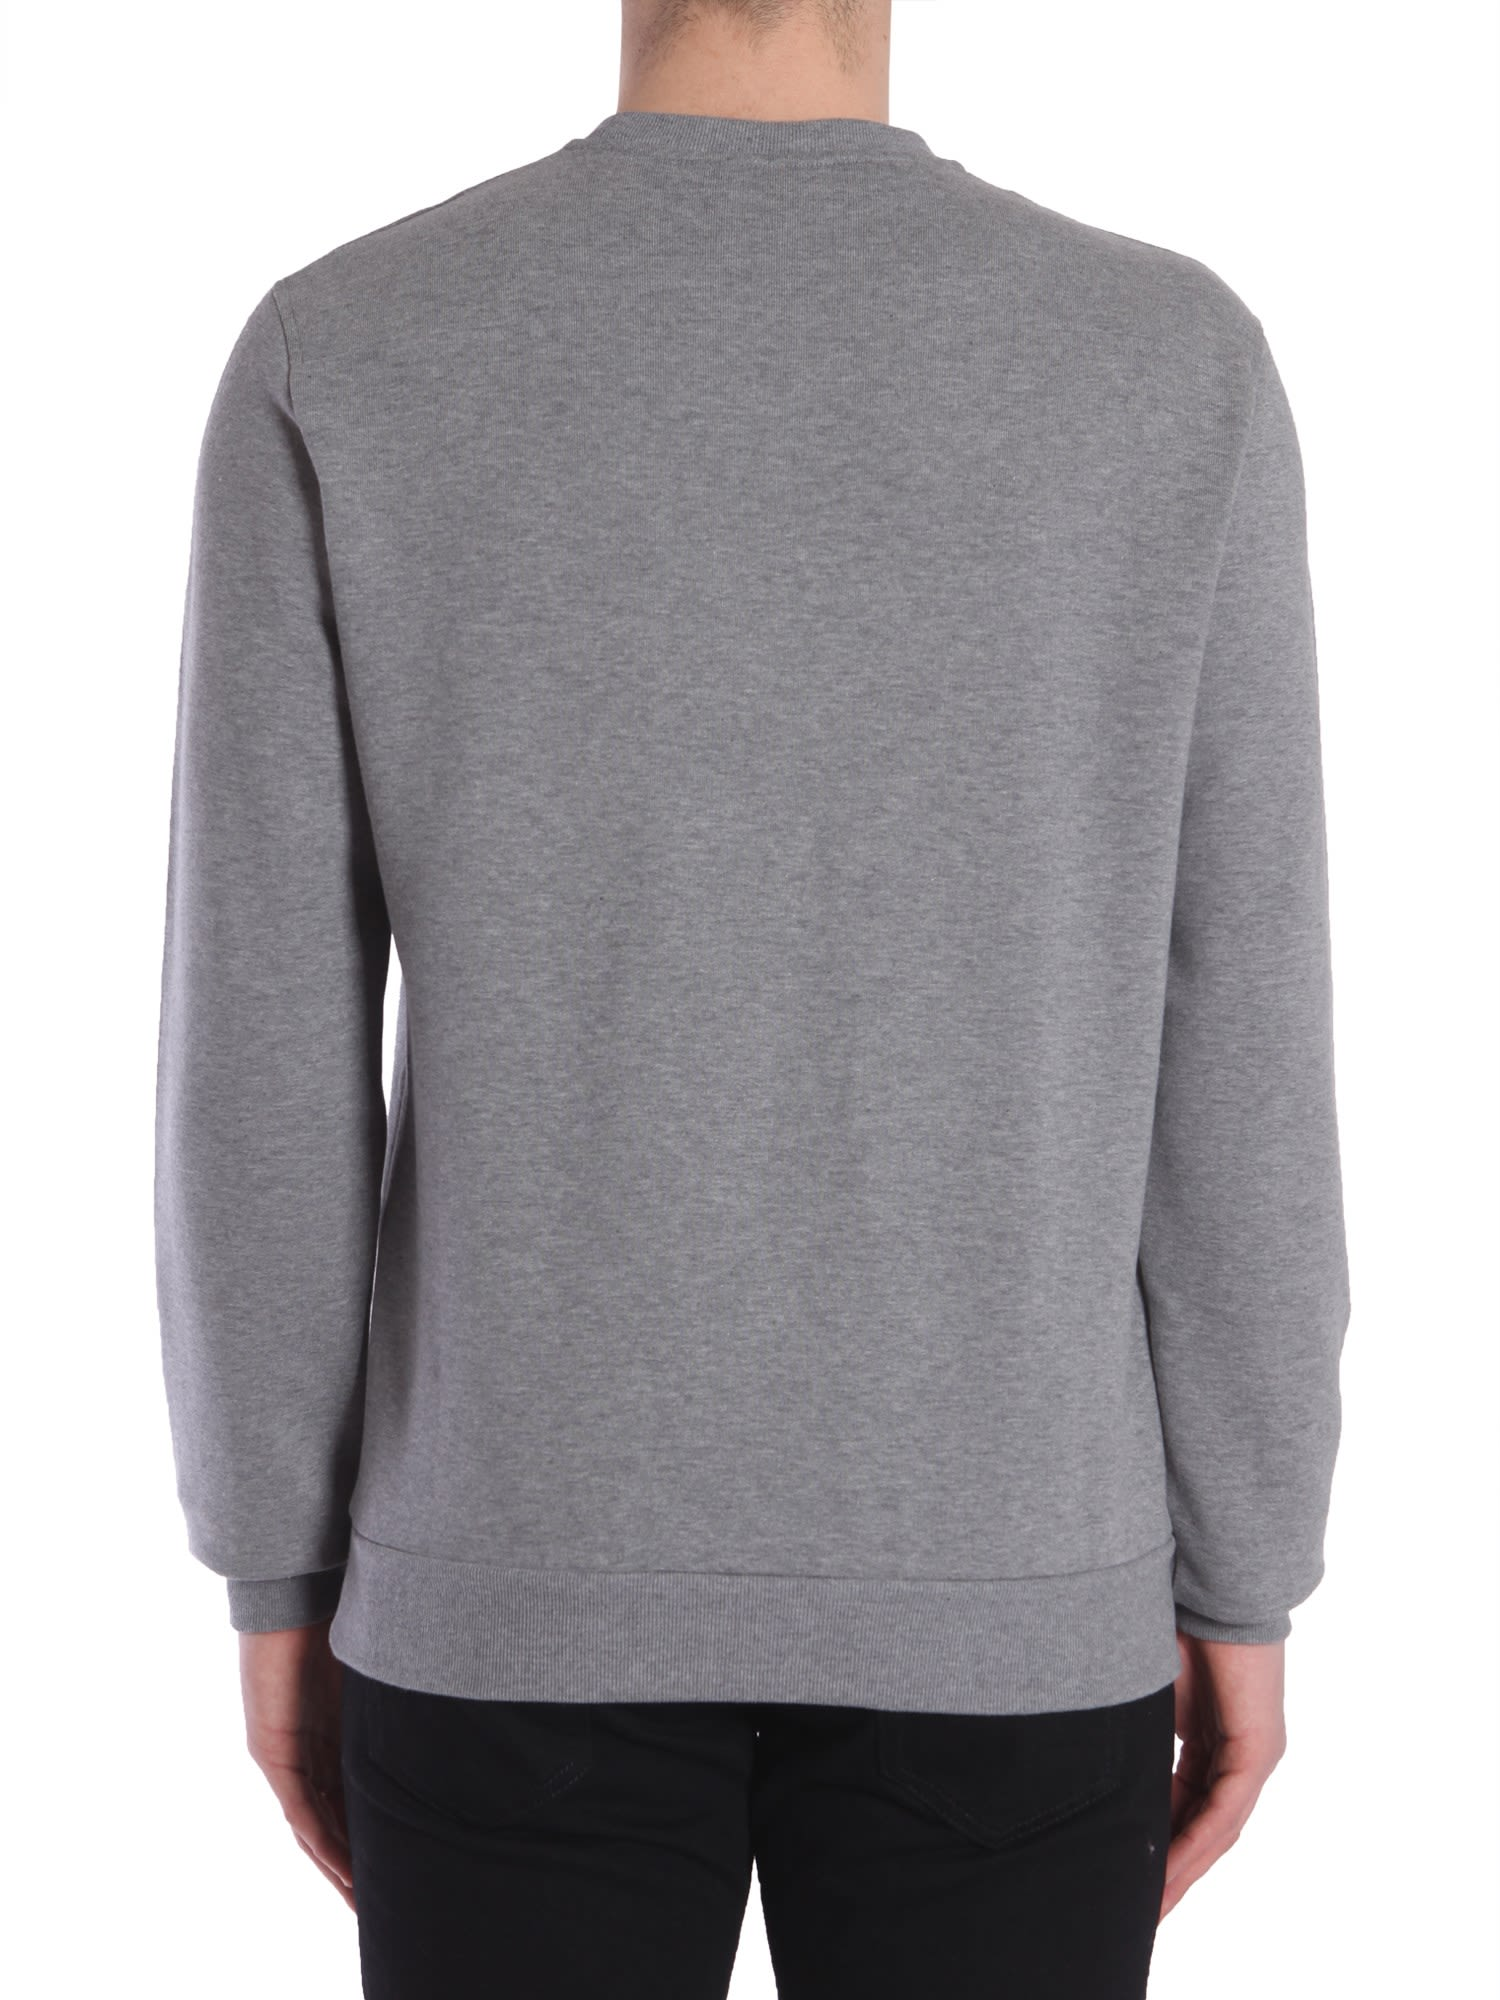 294aa060e6f67 Dior Homme Dior Homme Sweatshirt With